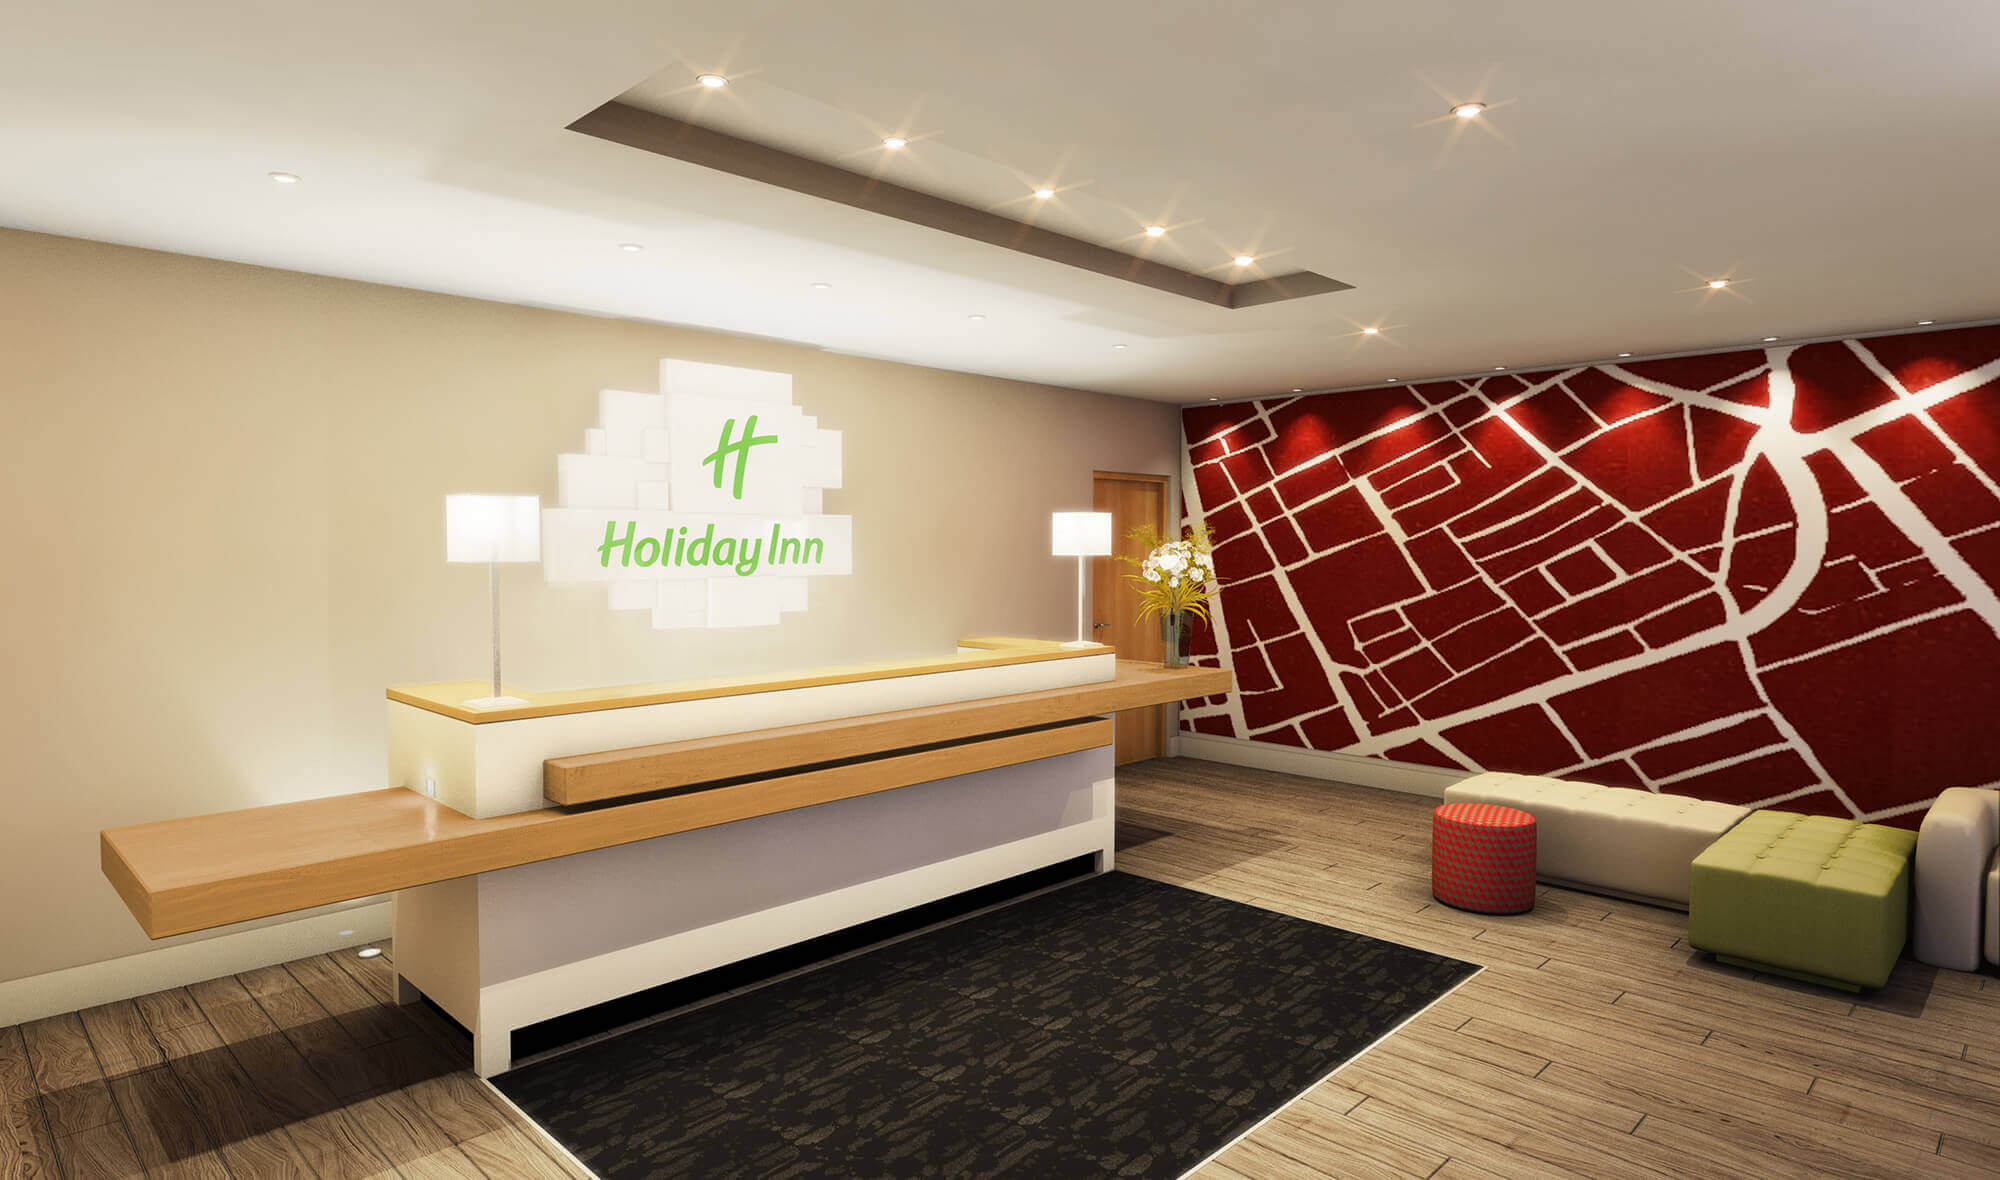 WHITE CROW STUDIOS - HOLIDAY INN RECEPTION - BRENTFORD LOCK, LONDON